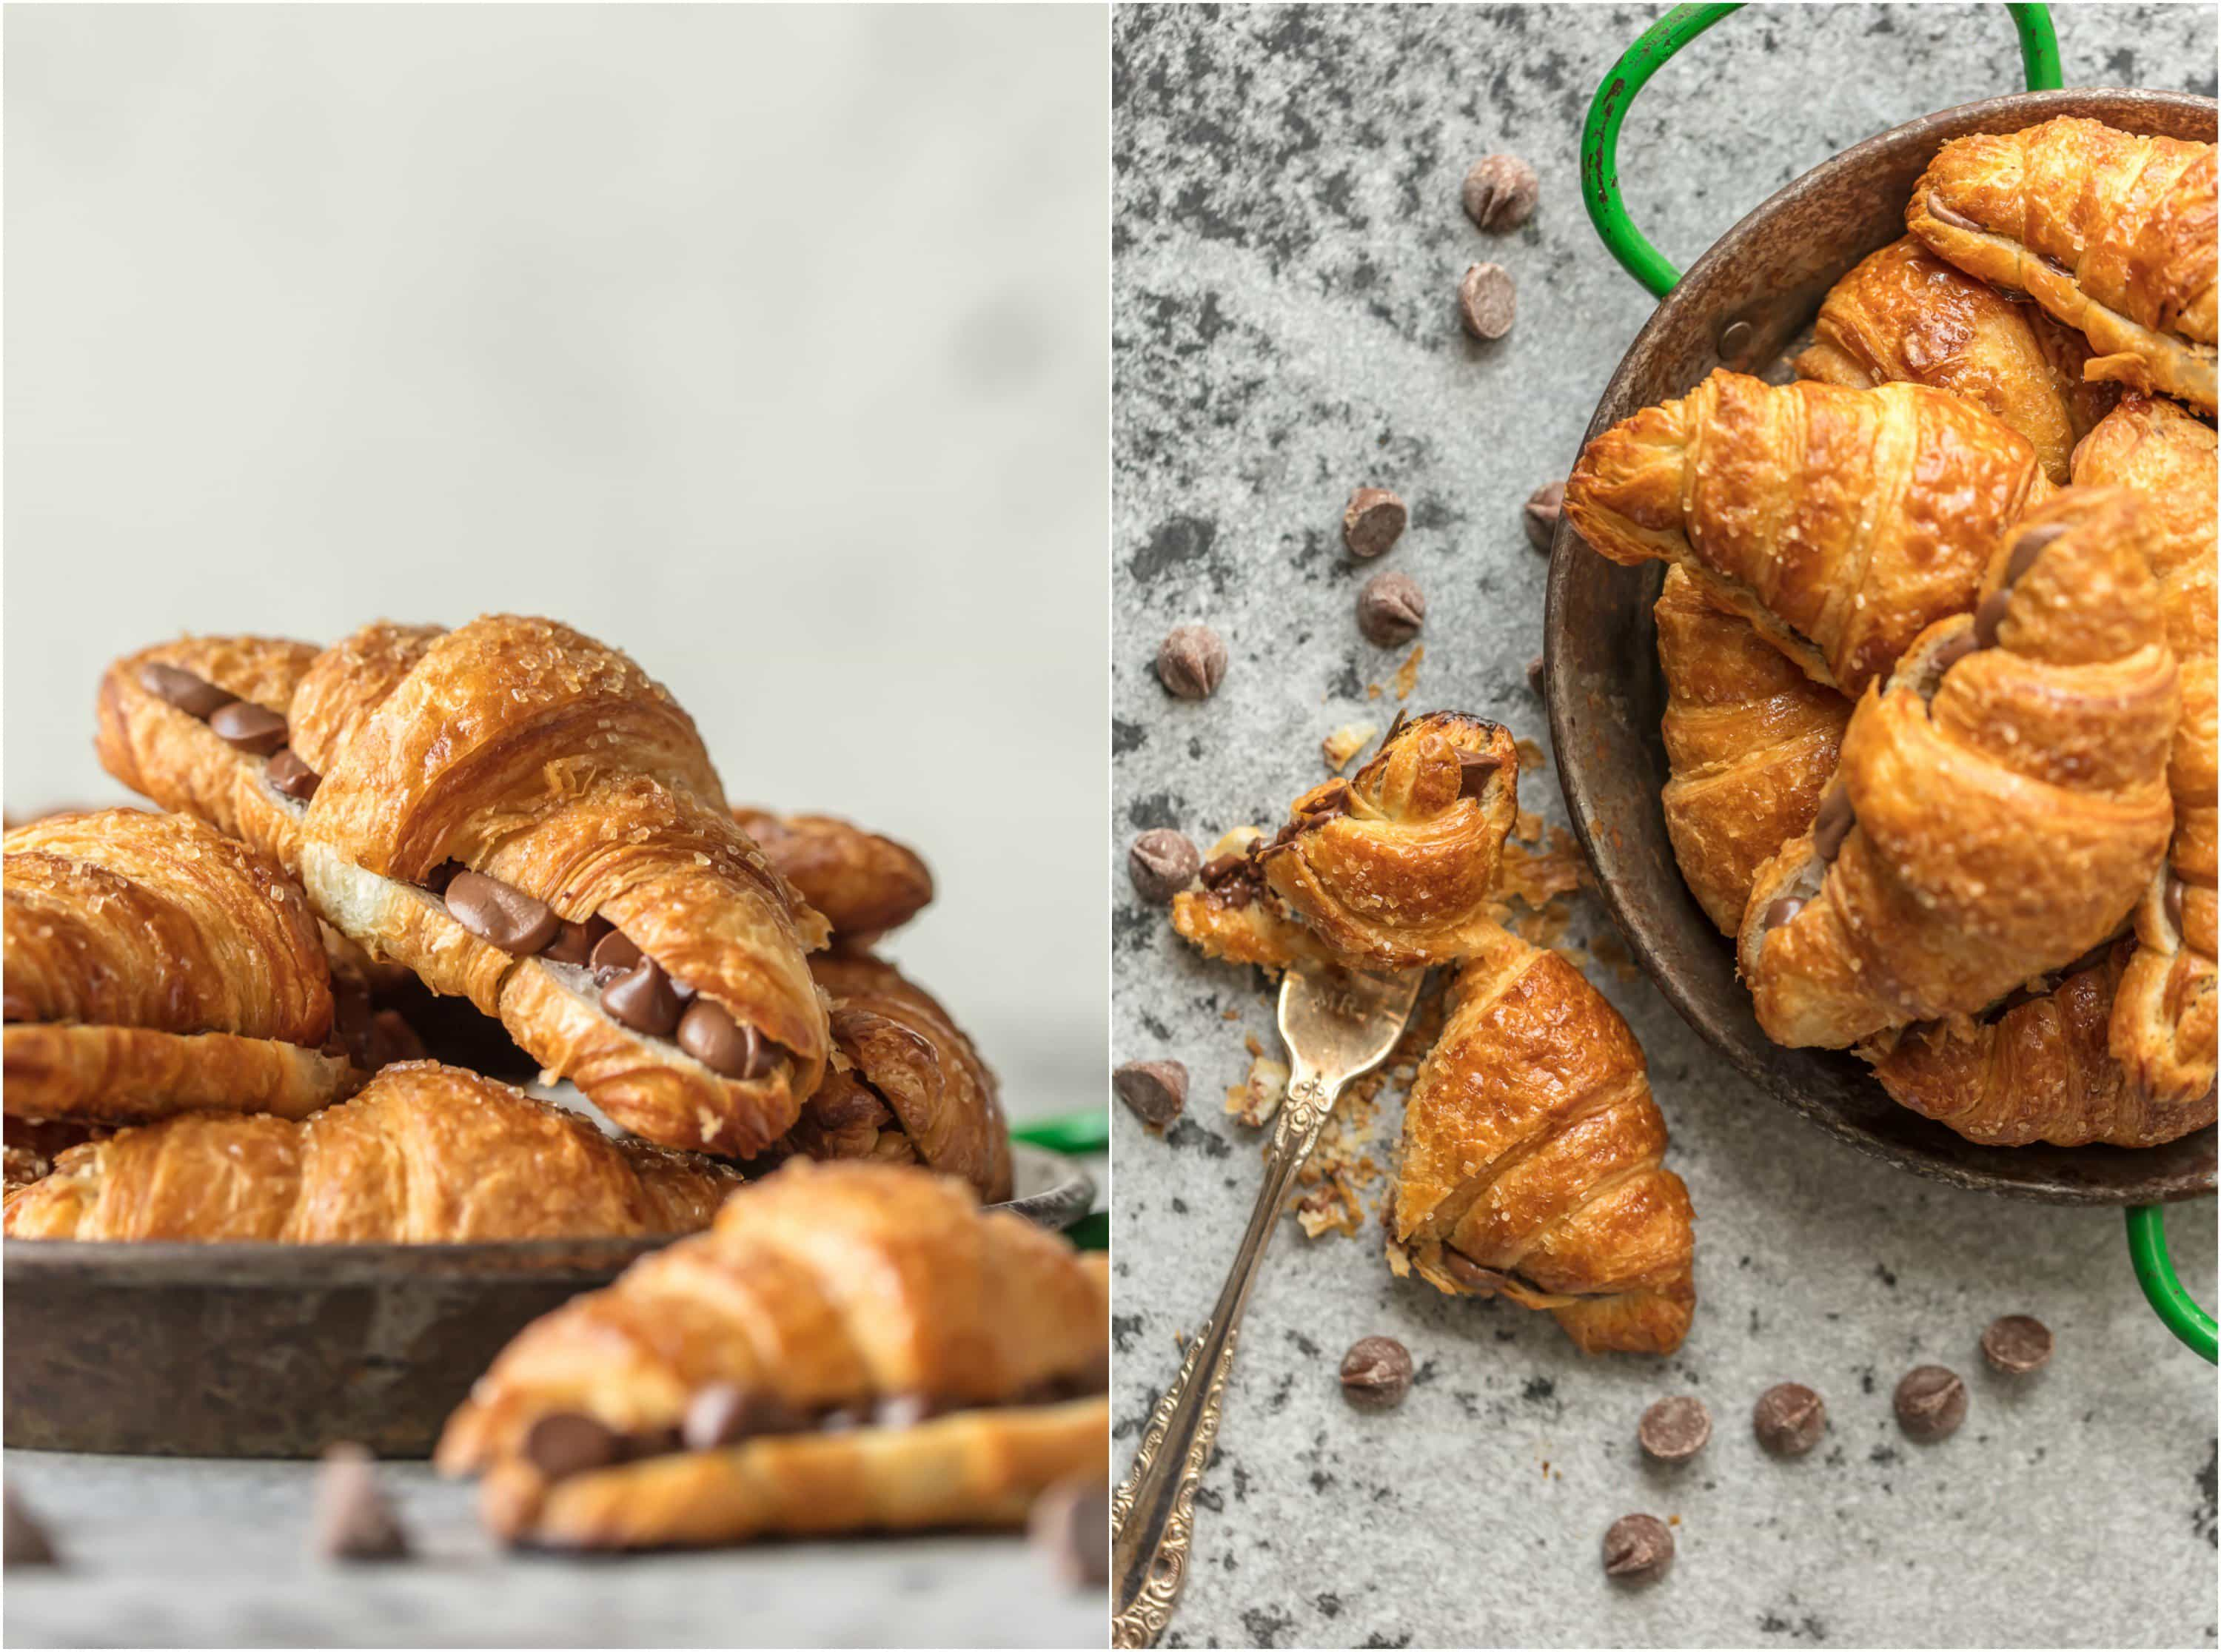 Sheet Pan Chocolate Croissant Recipe - The Cookie Rookie